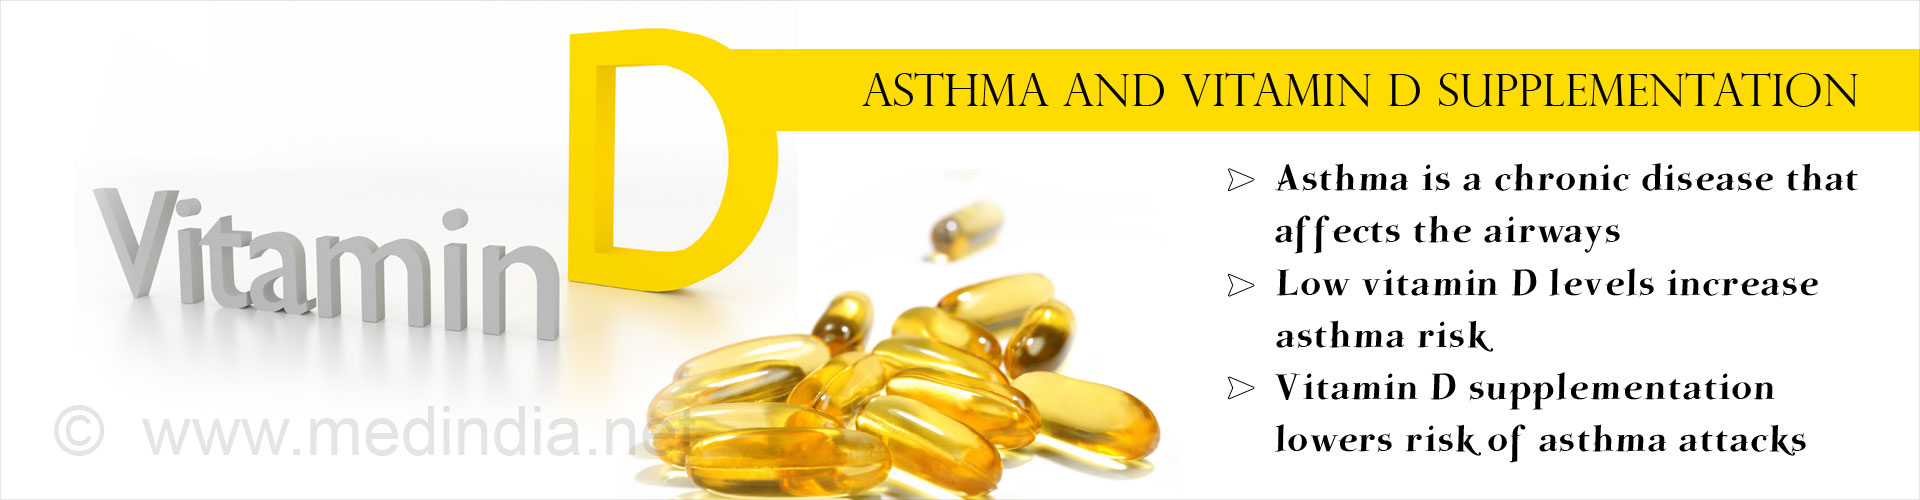 Asthma and Vitamin D Supplementation